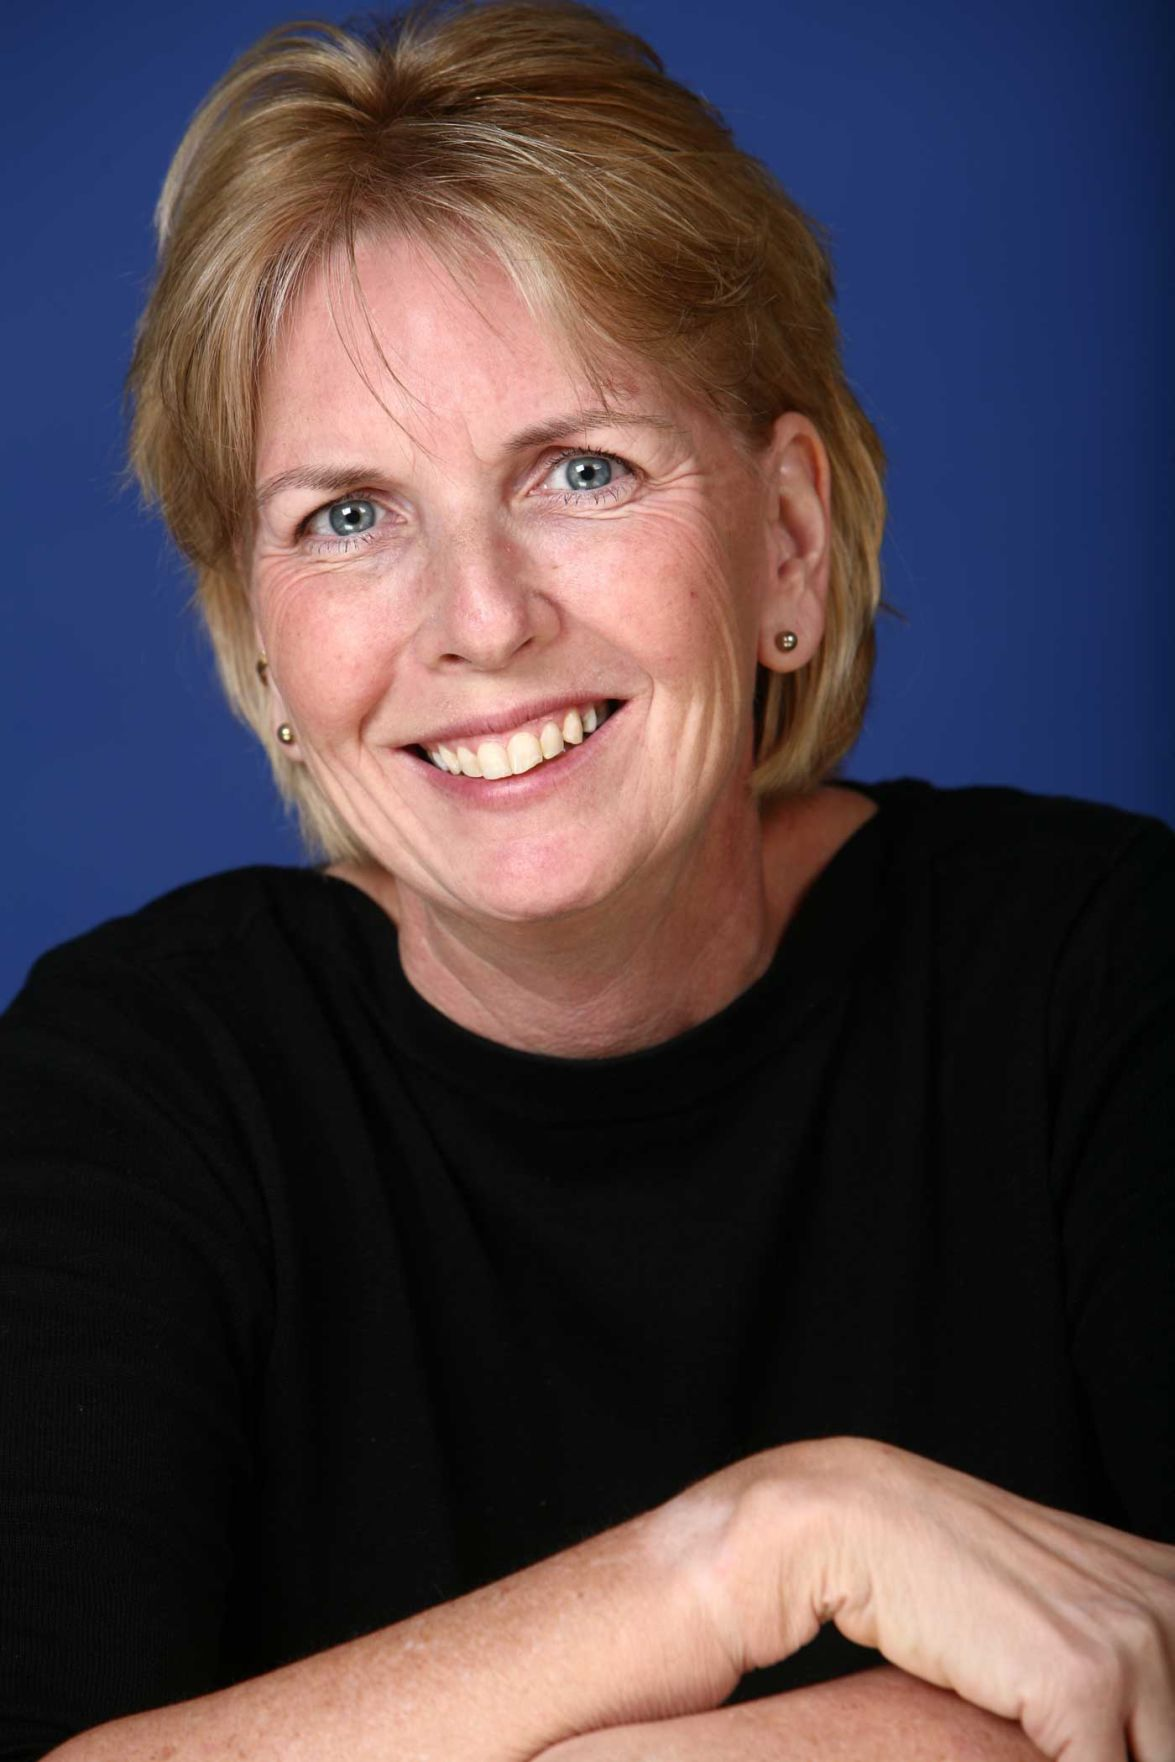 Top Joke-Writer, Jan McInnis